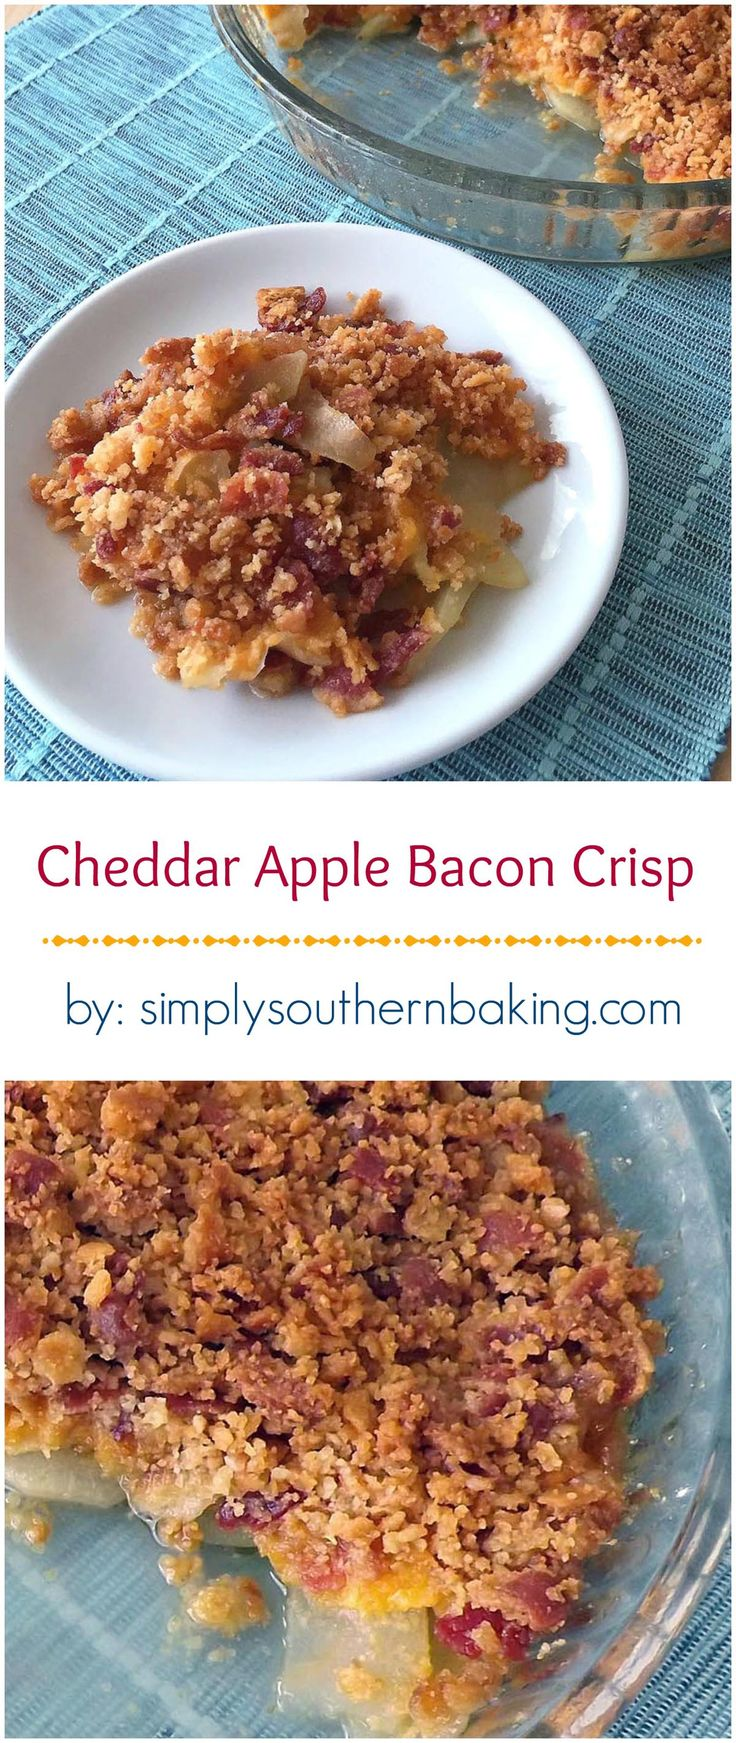 Apples, cheese, bacon and buttery crackers come together to make a sweet, salty, crunchy and savory apple crisp all rolled into one. #FWCon #WisconsinCheese